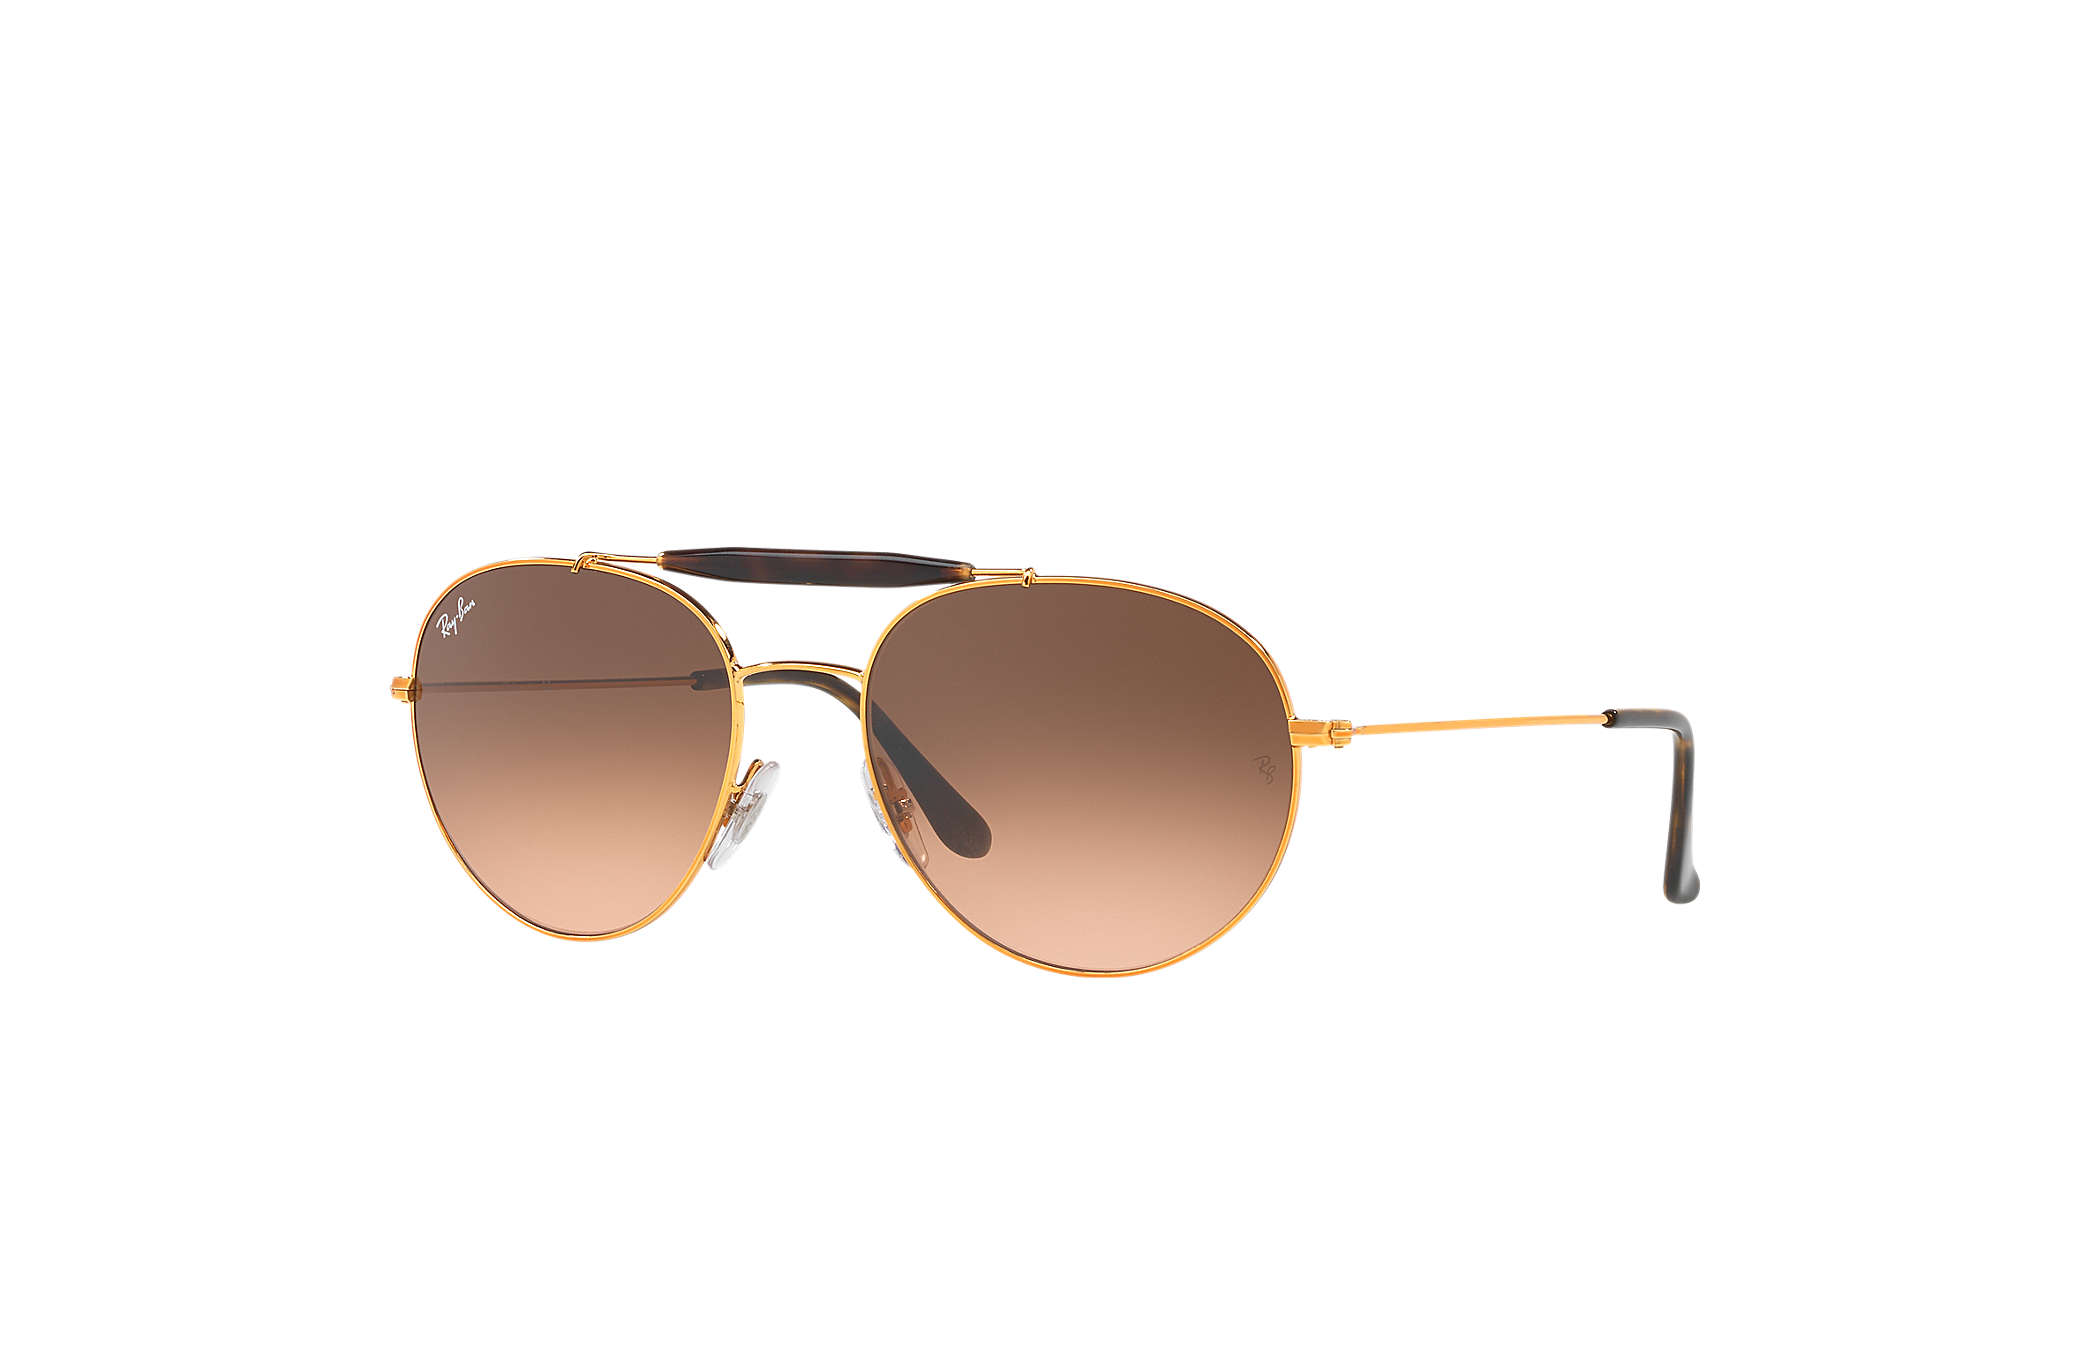 c6bc18dc46 Ray-Ban RB3540 Bronze-Copper - Metal - Pink Brown Lenses ...